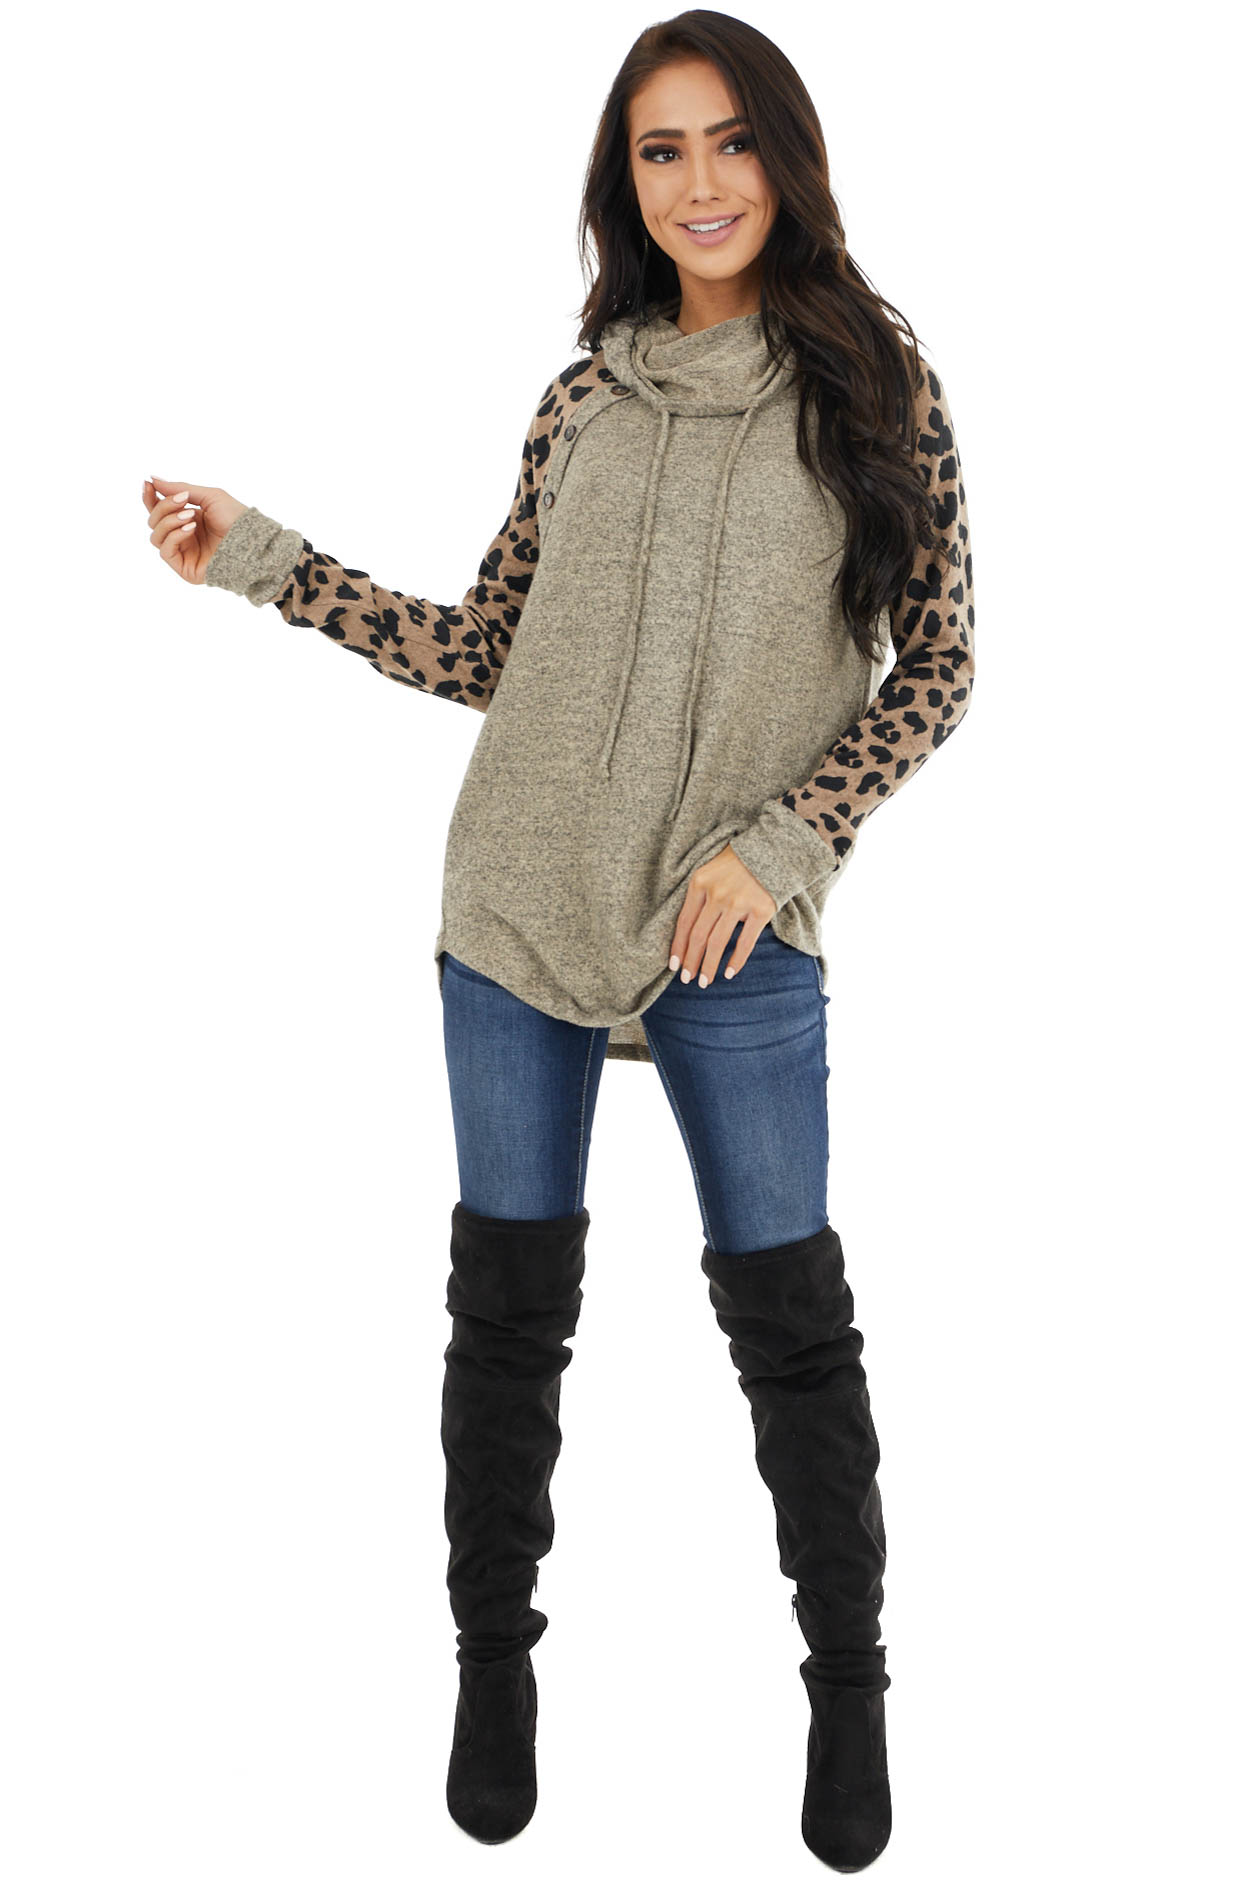 Beige Cowl Neck Top with Leopard Sleeves and Buttons